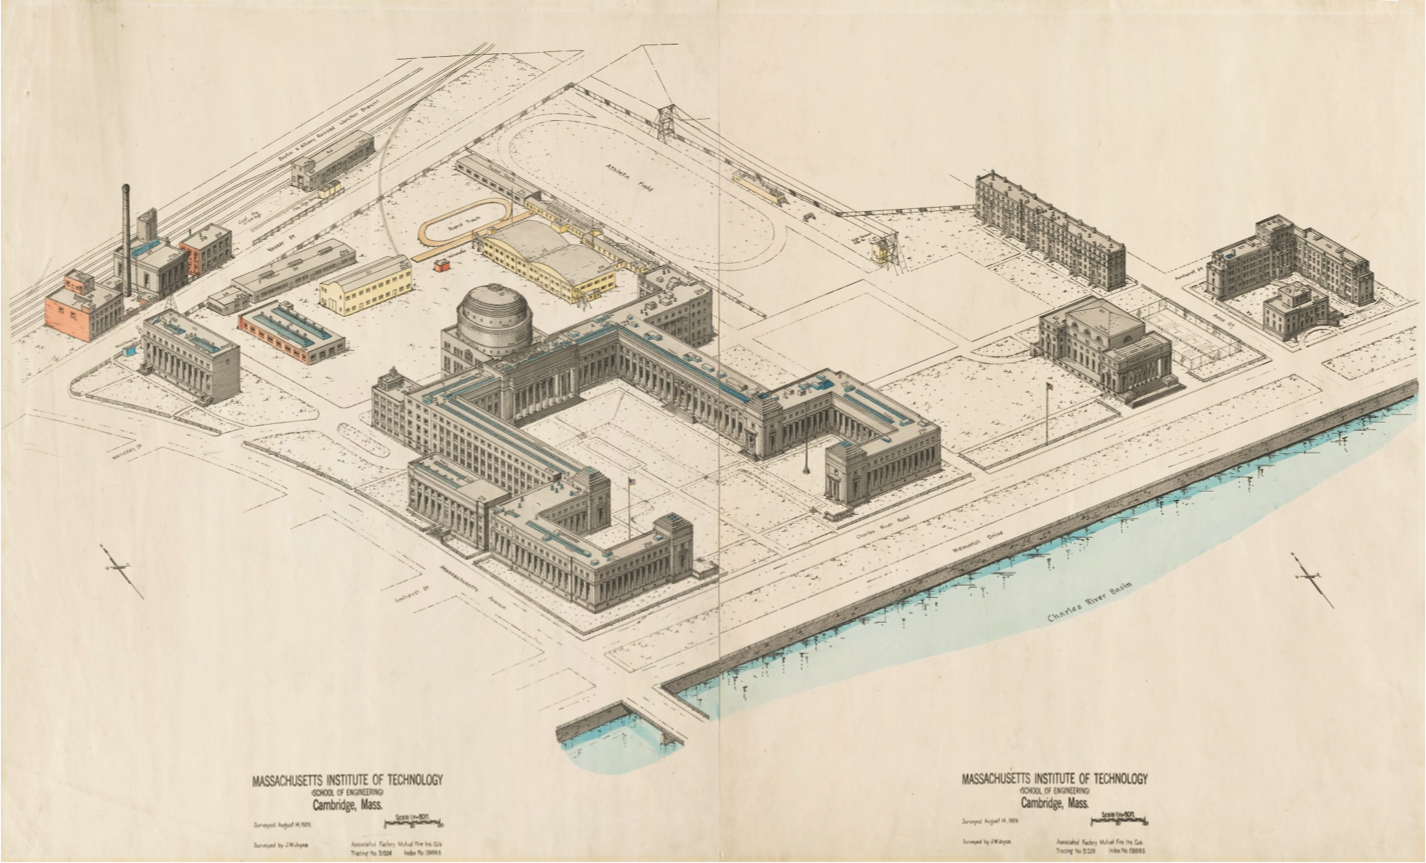 Drawing of MIT's Central Utilities Plant (CUP) in 1929